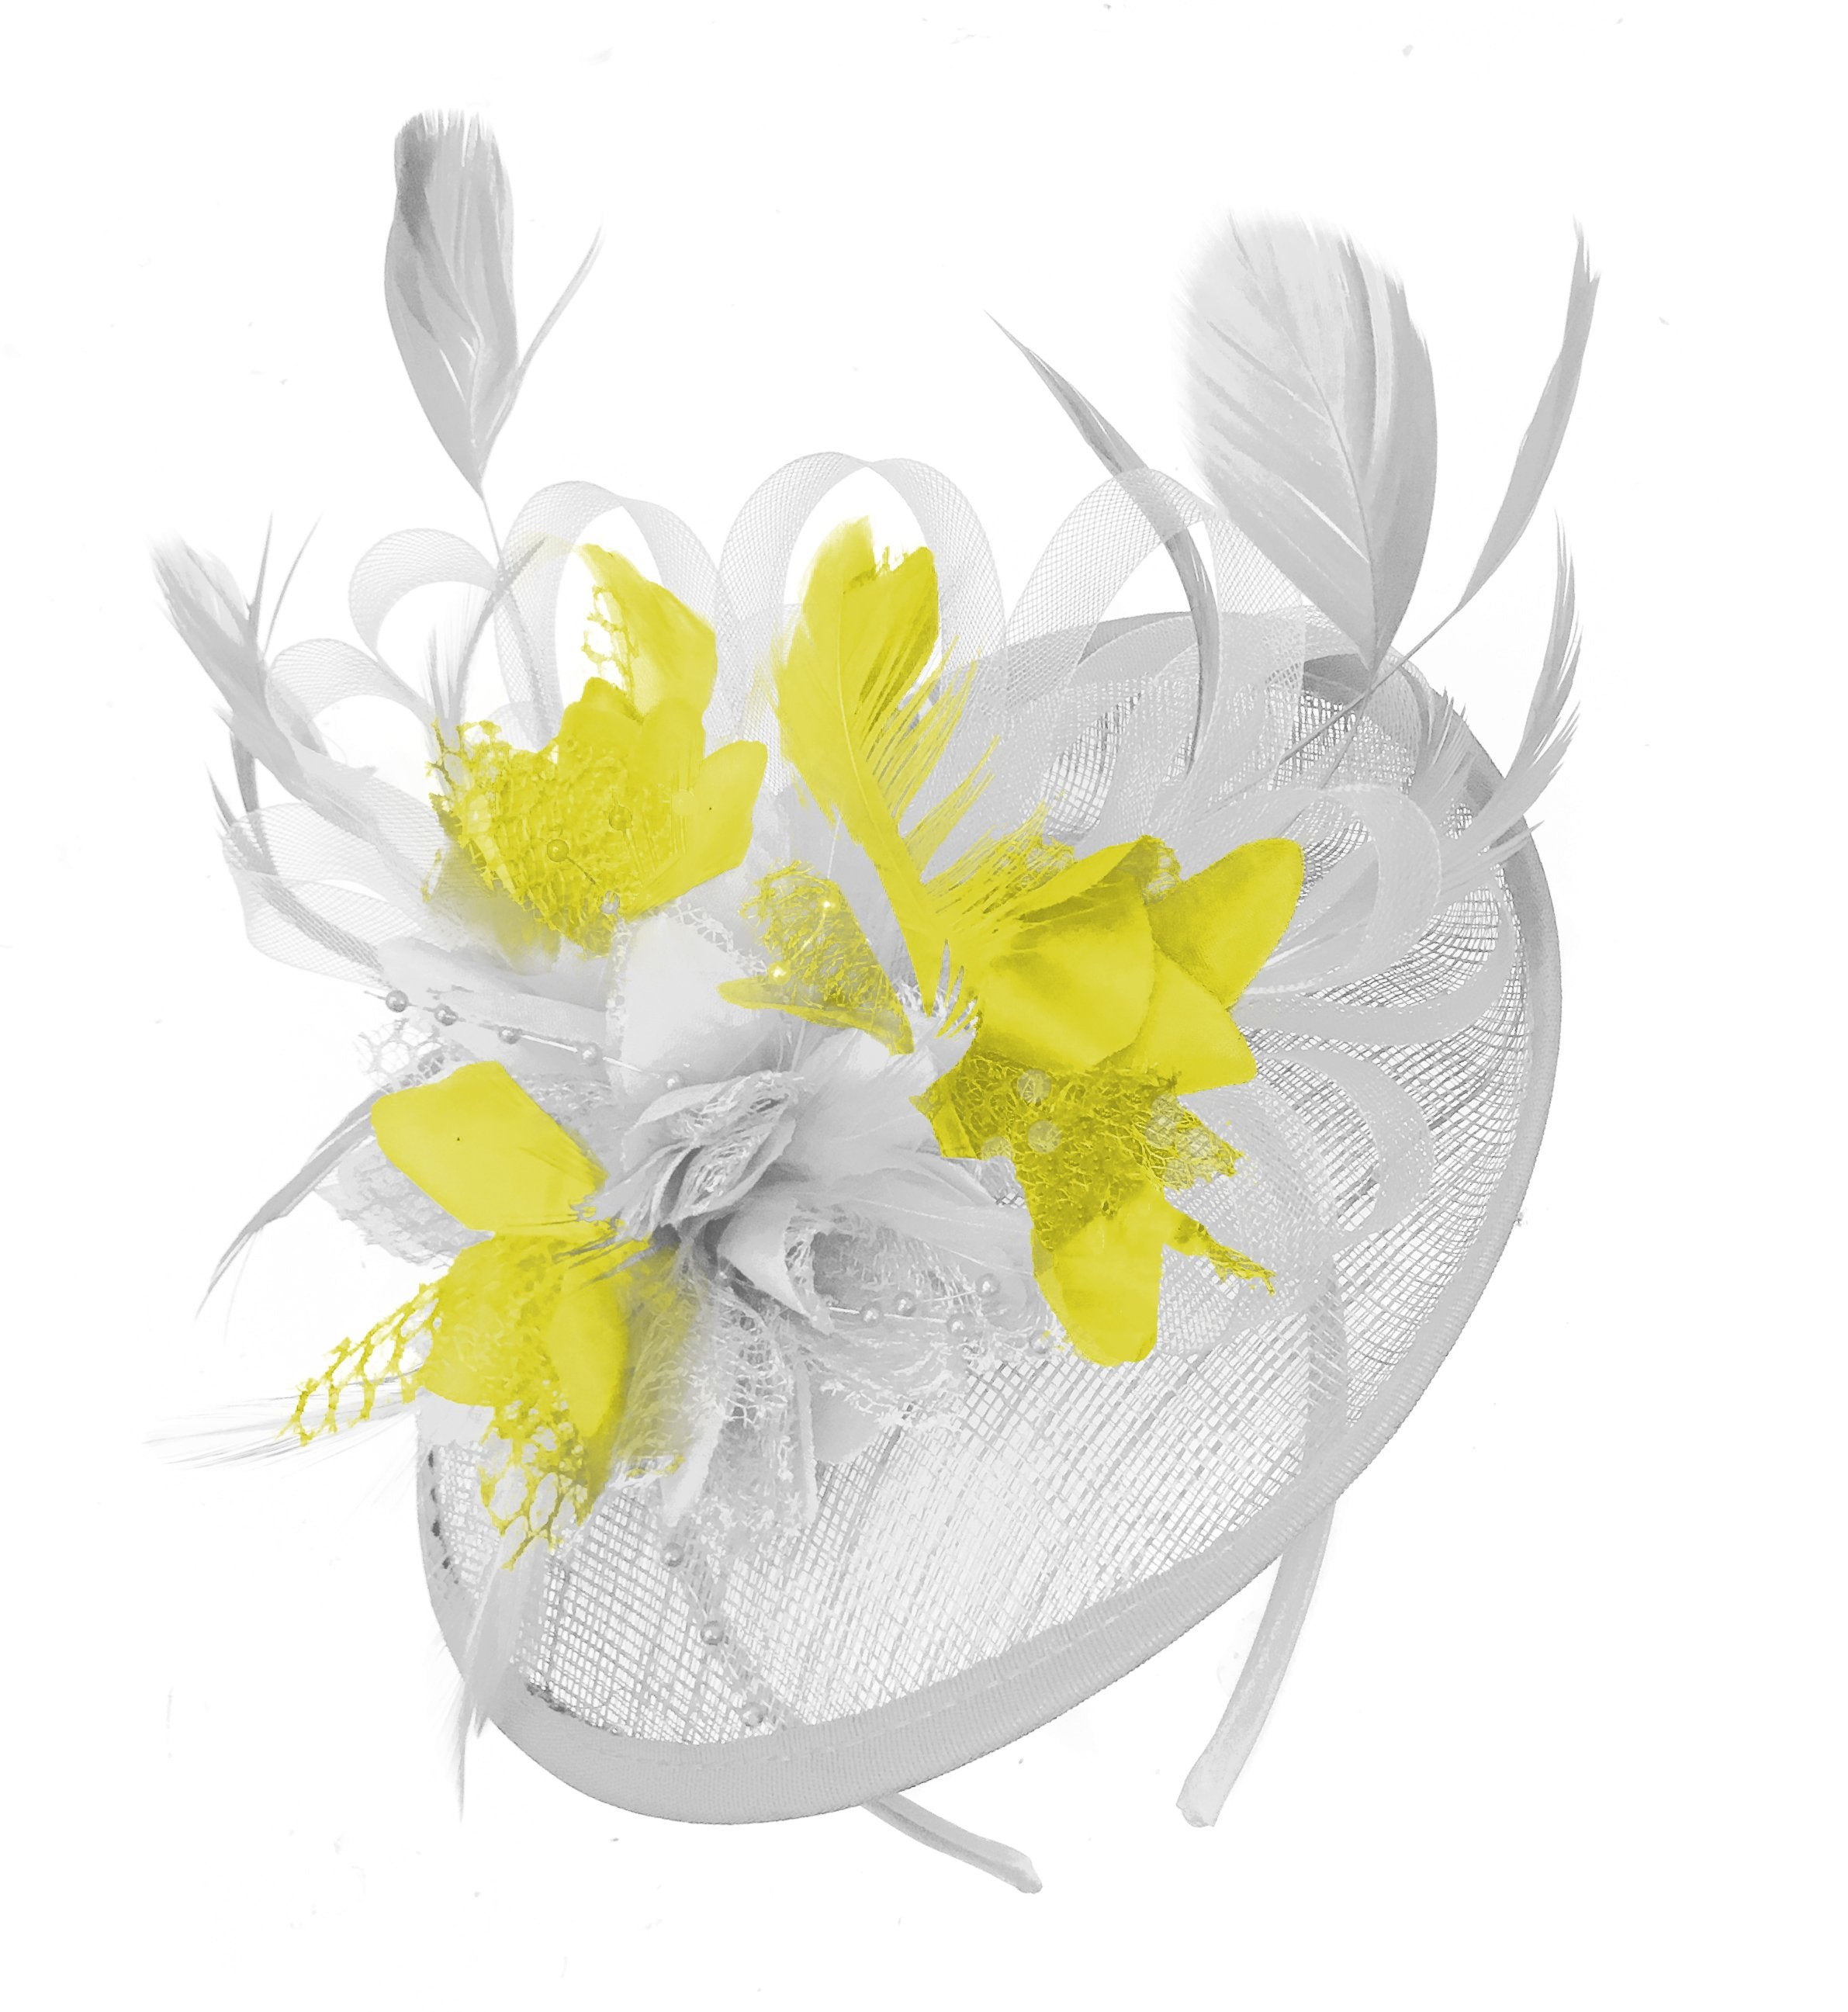 Caprilite White and Yellow Sinamay Disc Saucer Fascinator Hat for Women Weddings Headband